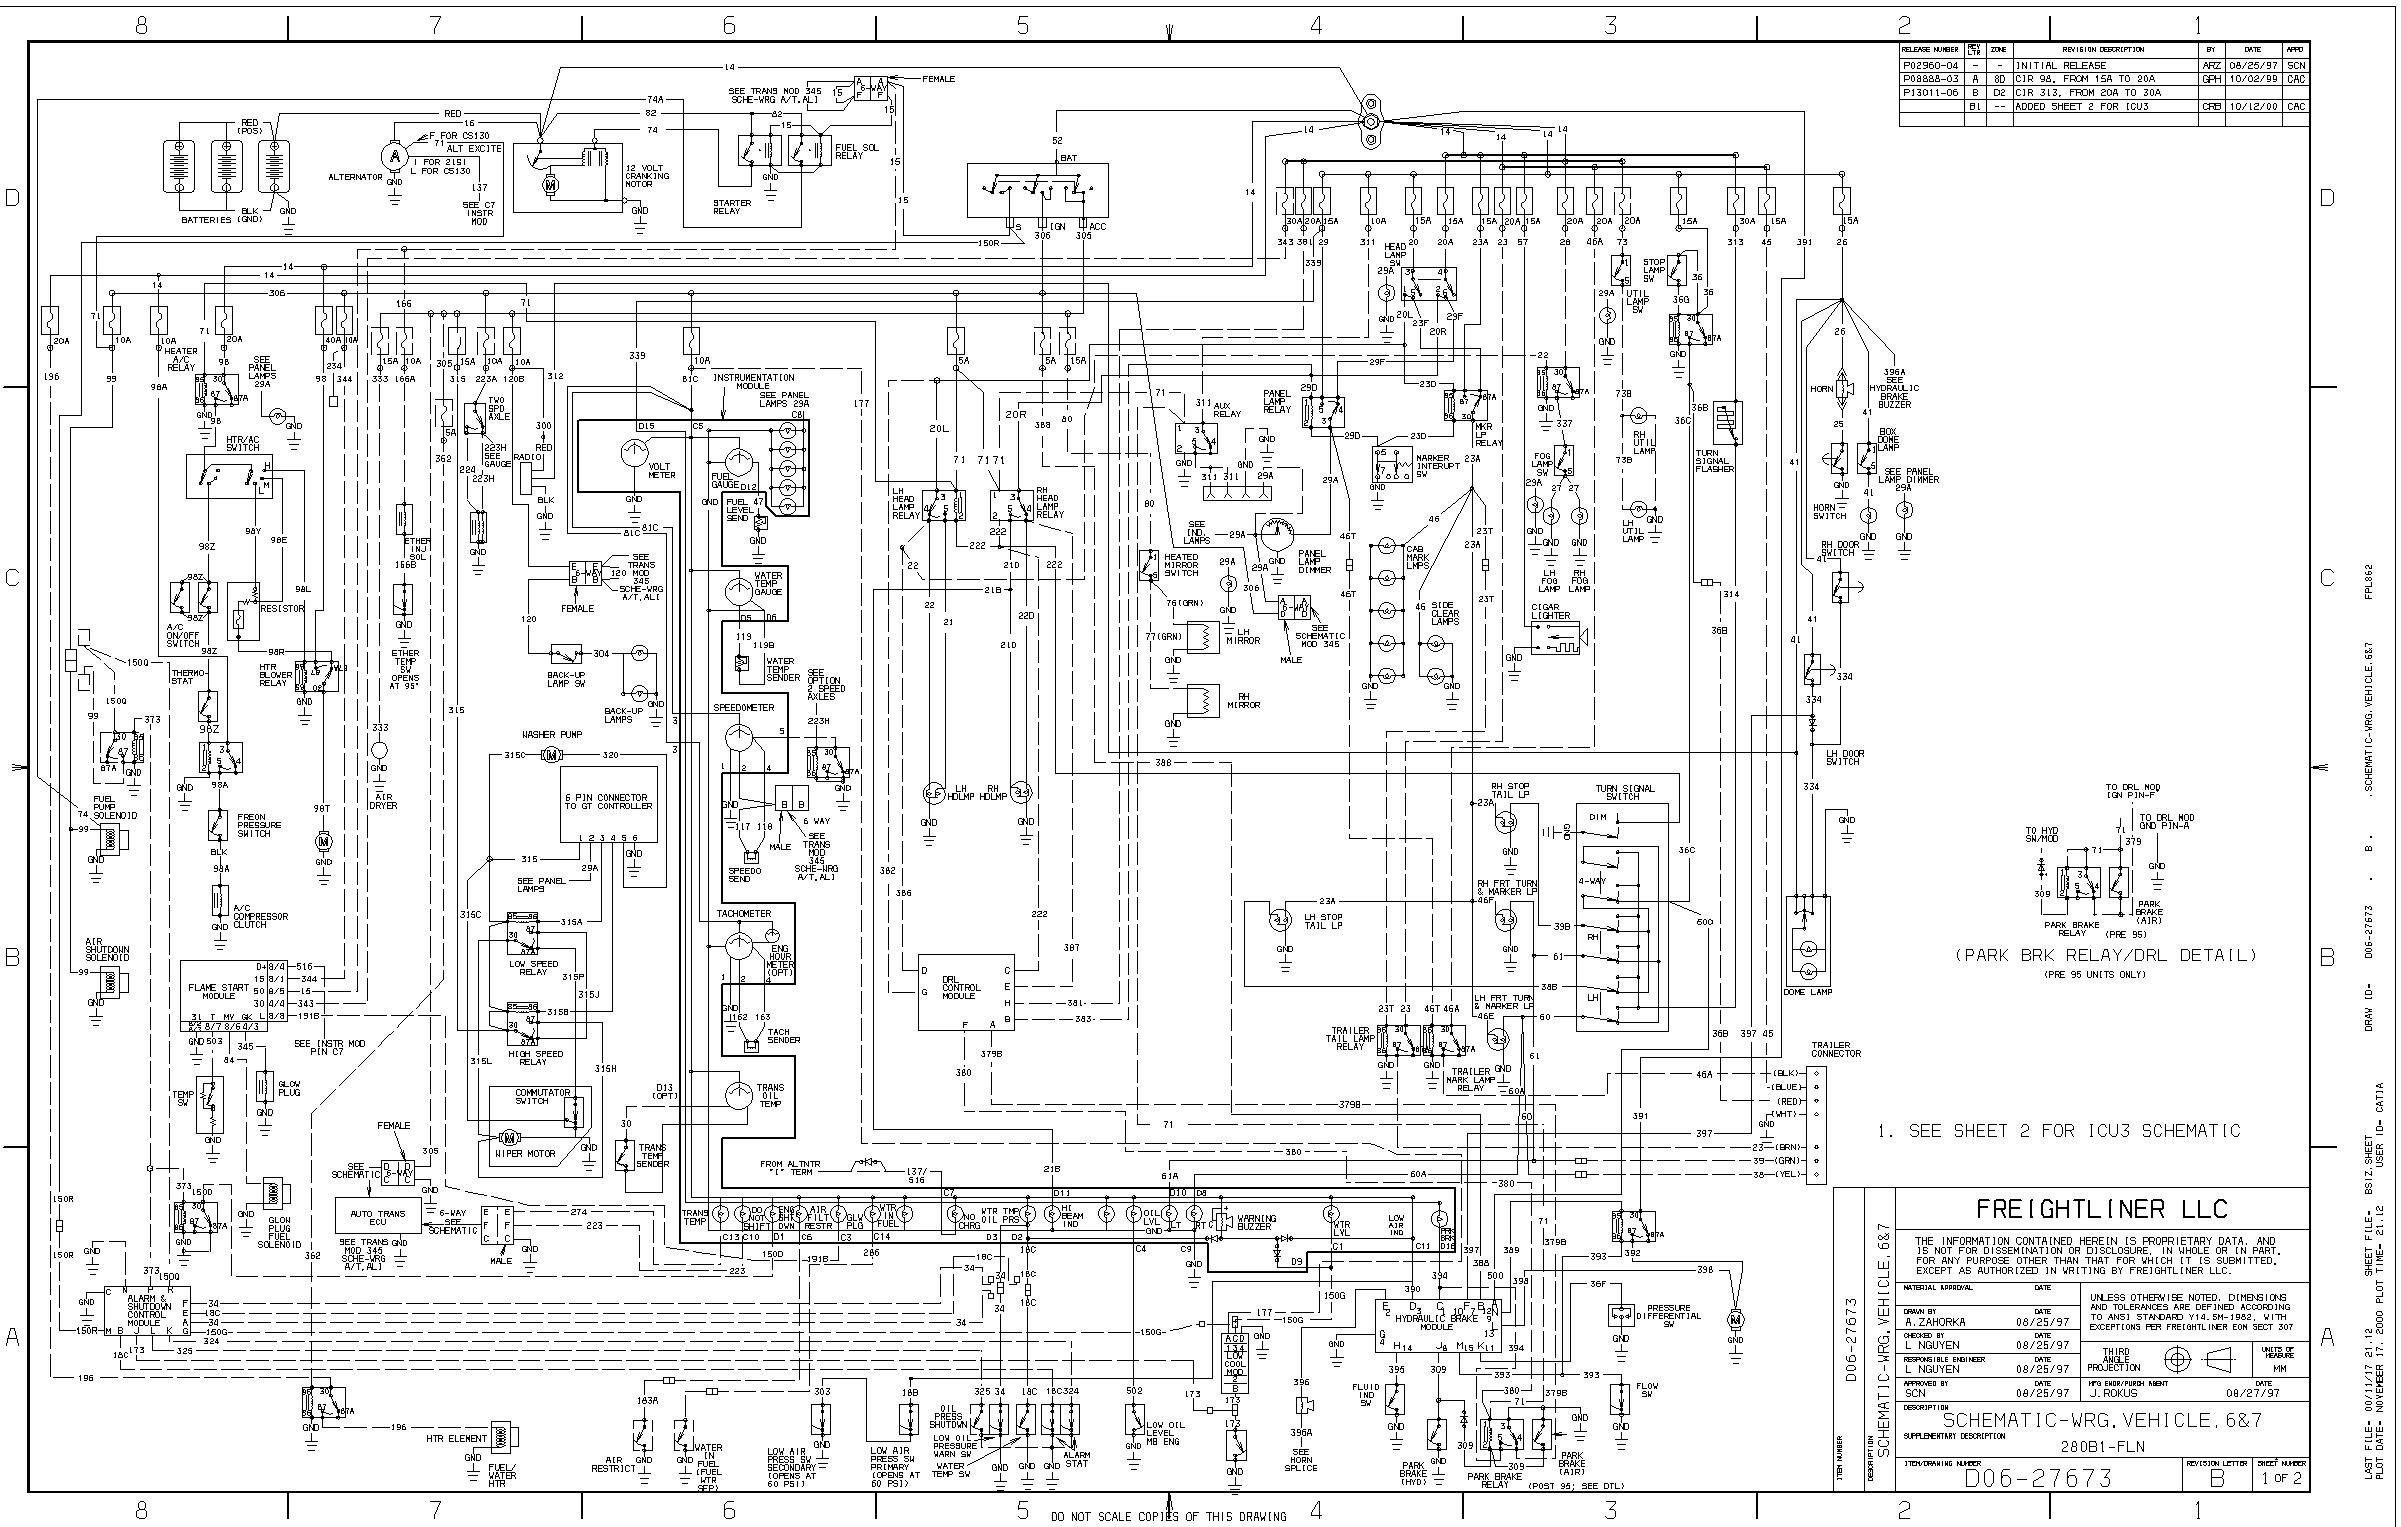 freightliner wire diagram go wiring diagram 2007 freightliner m2 fuse box location 2007 freightliner fuse box #15